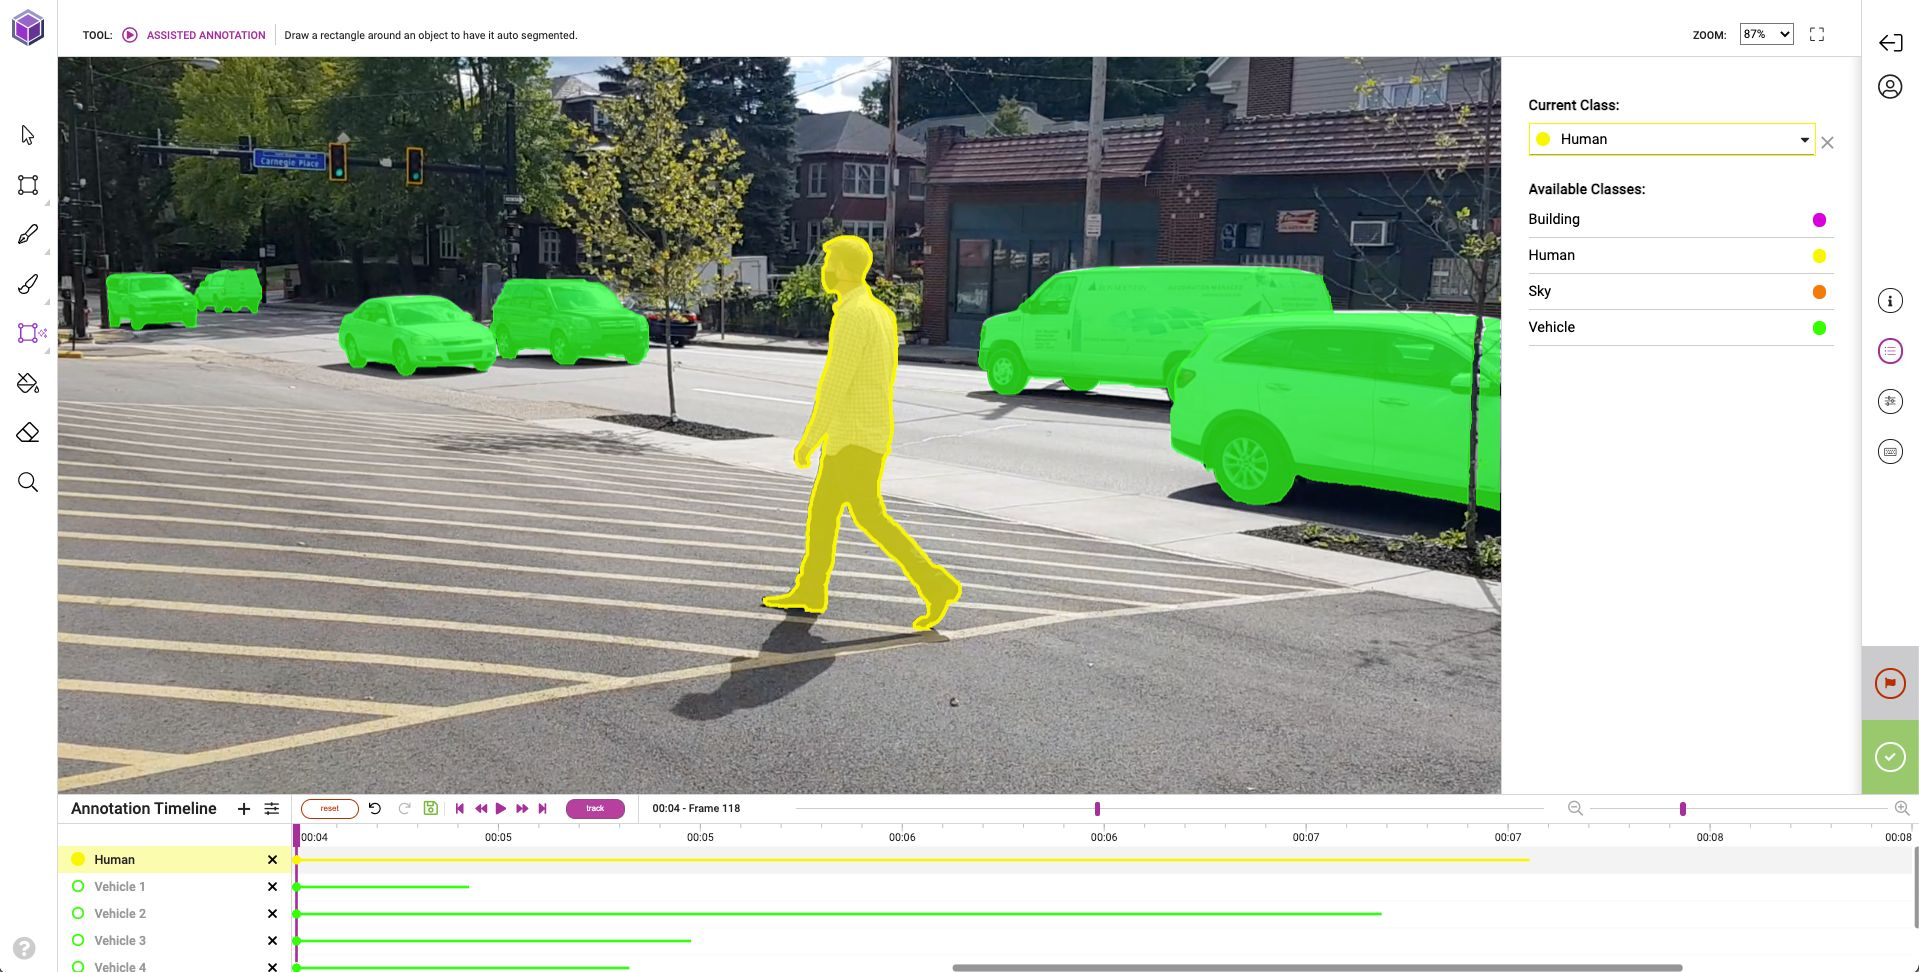 /image-automation-and-assisted-video-annotation-mc2t35fo feature image